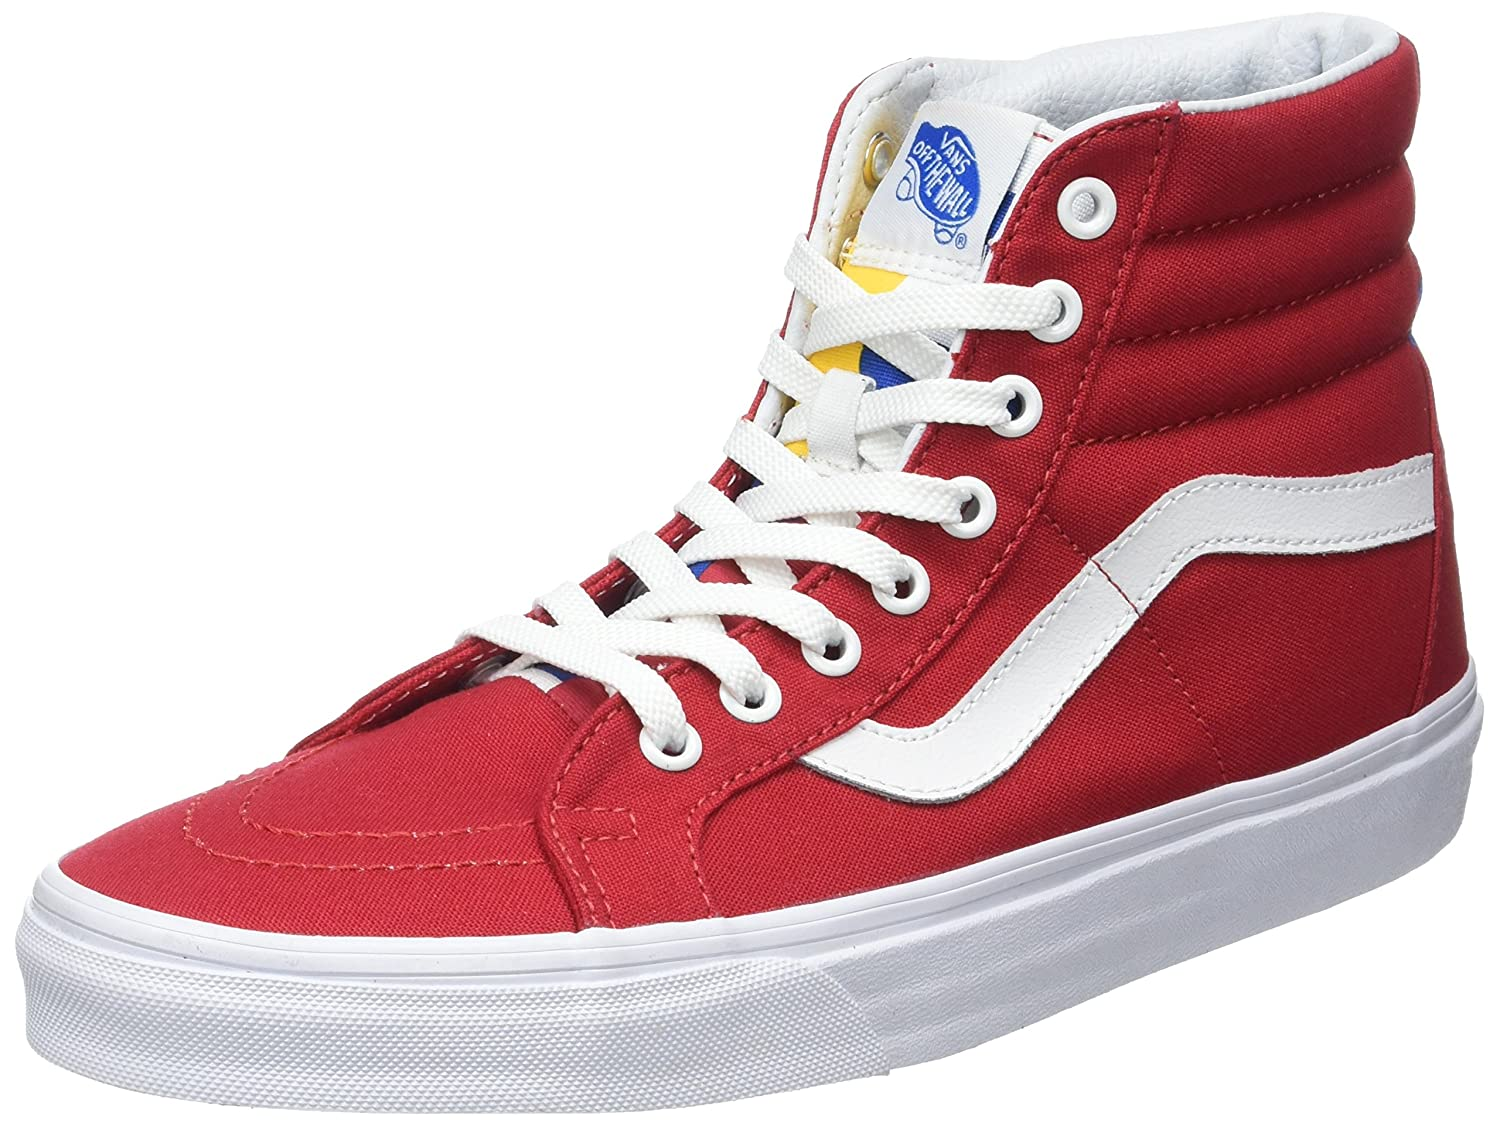 VANS MENS SK8 HI REISSUE LEATHER SHOES B01I2B4G80 14.5 B(M) US Women / 13 D(M) US Men|Red/Blue/White